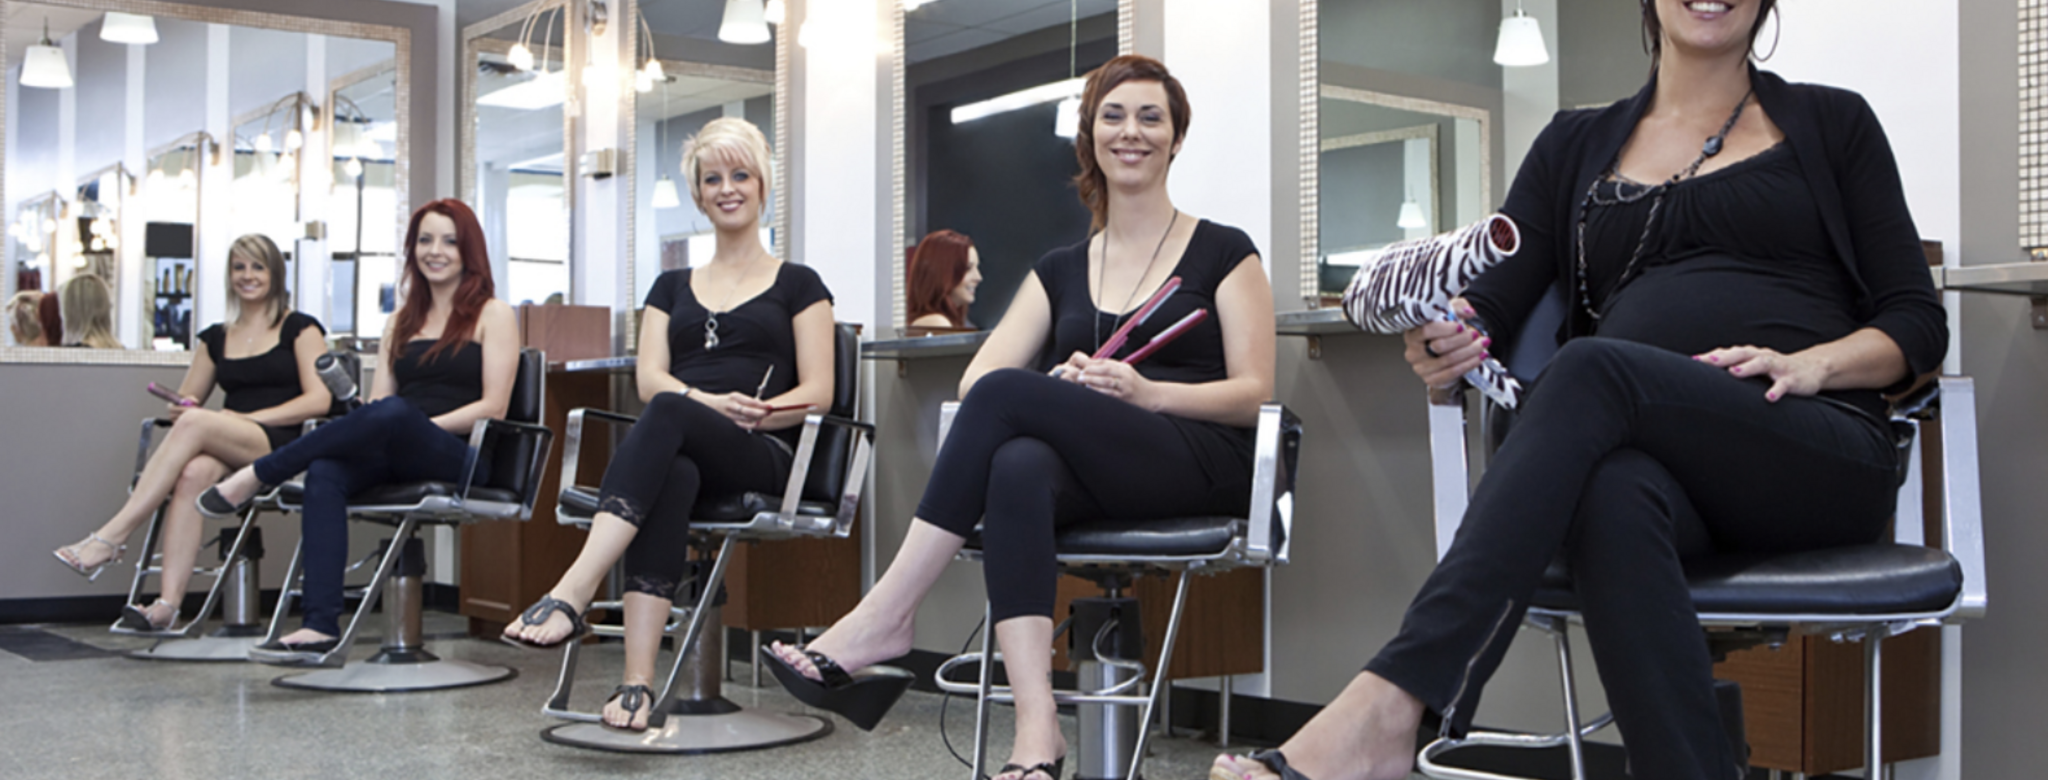 hair stylists sitting in chairs in salon